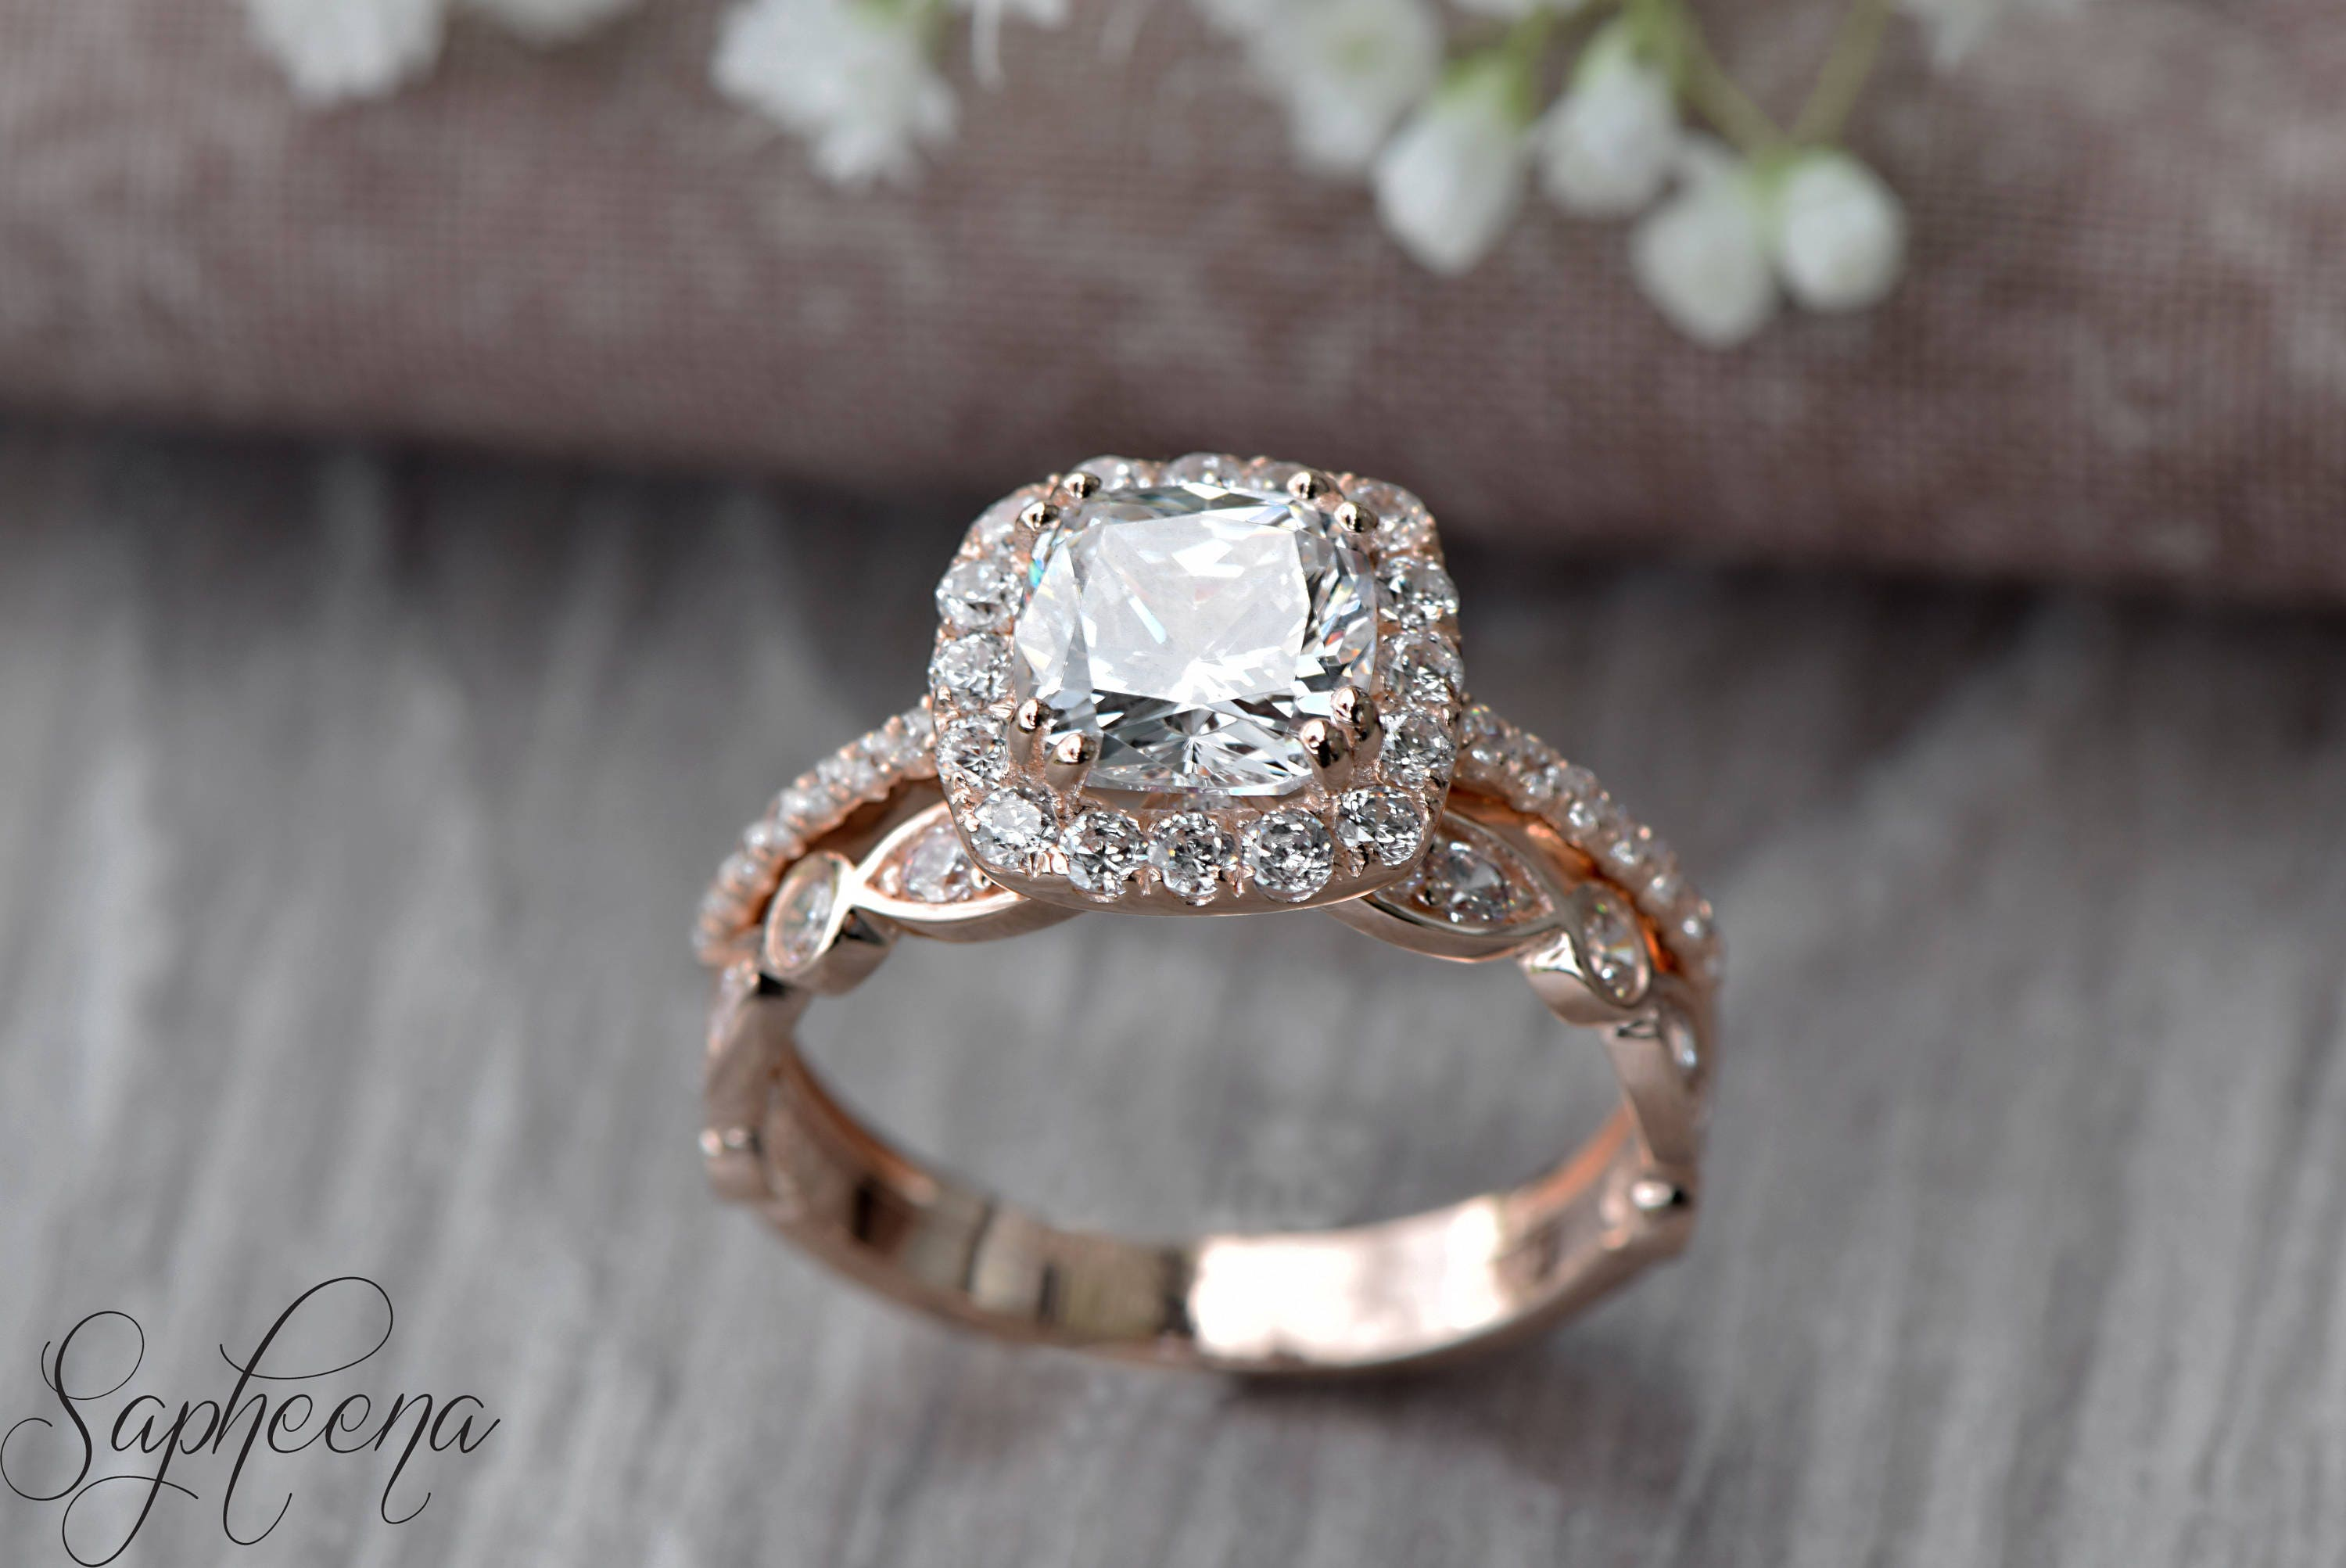 Set of 2 Brilliant Cushion Cut Engagement Ring with Art Deco